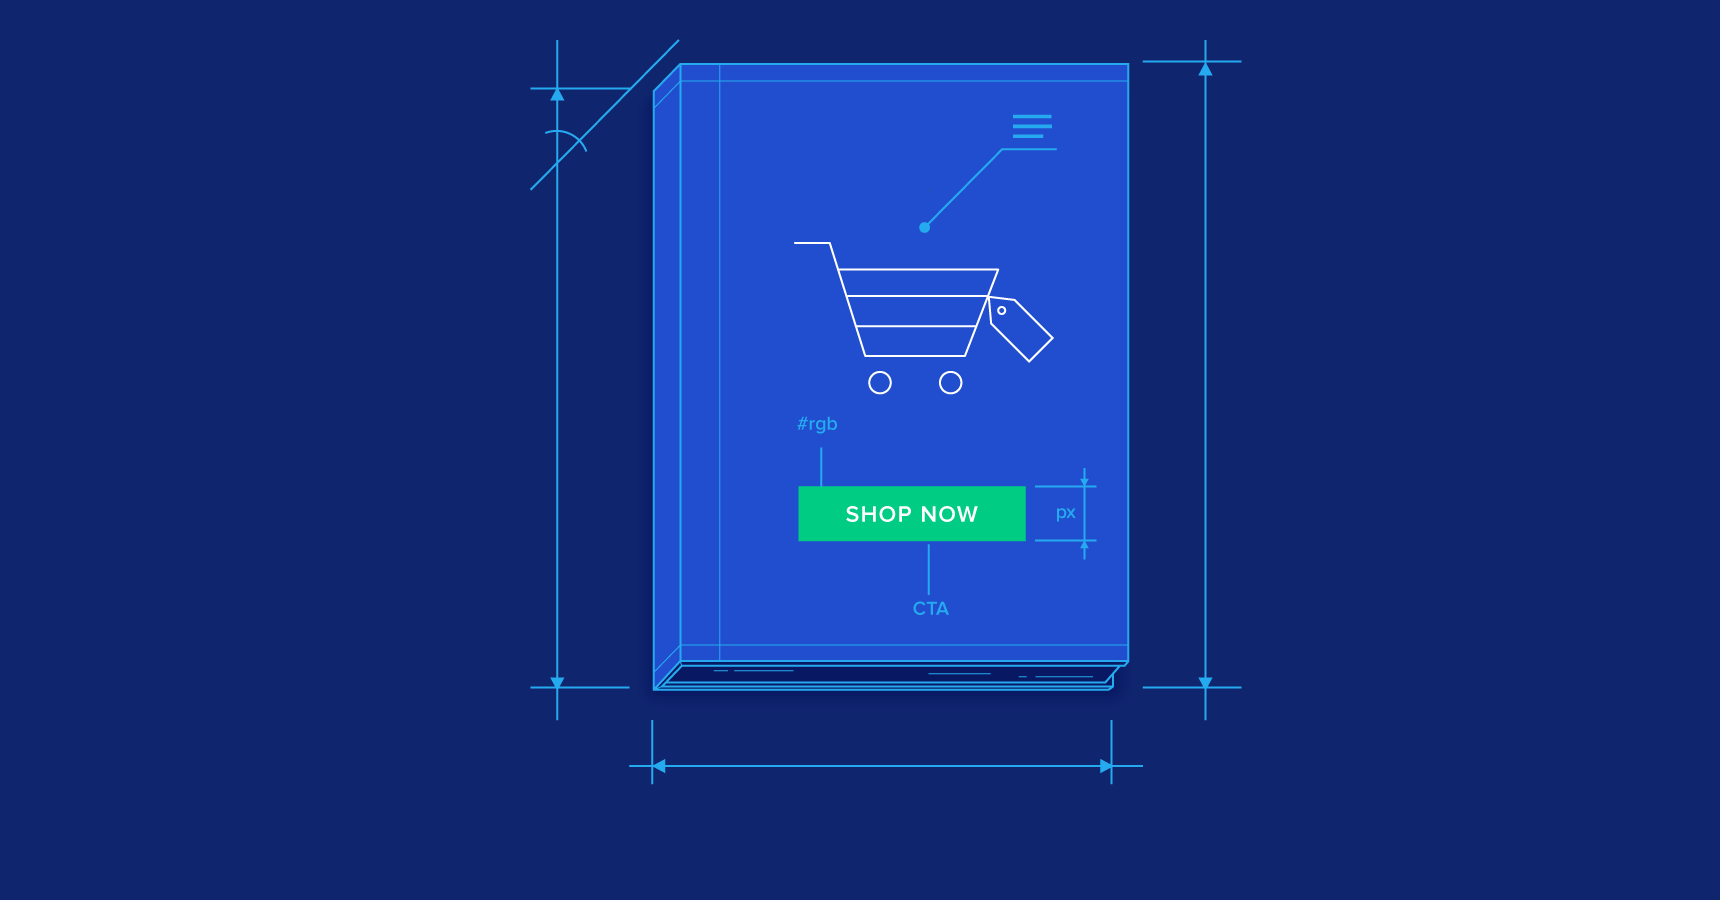 Evaluating Ecommerce Website Design Firms - Key considerations